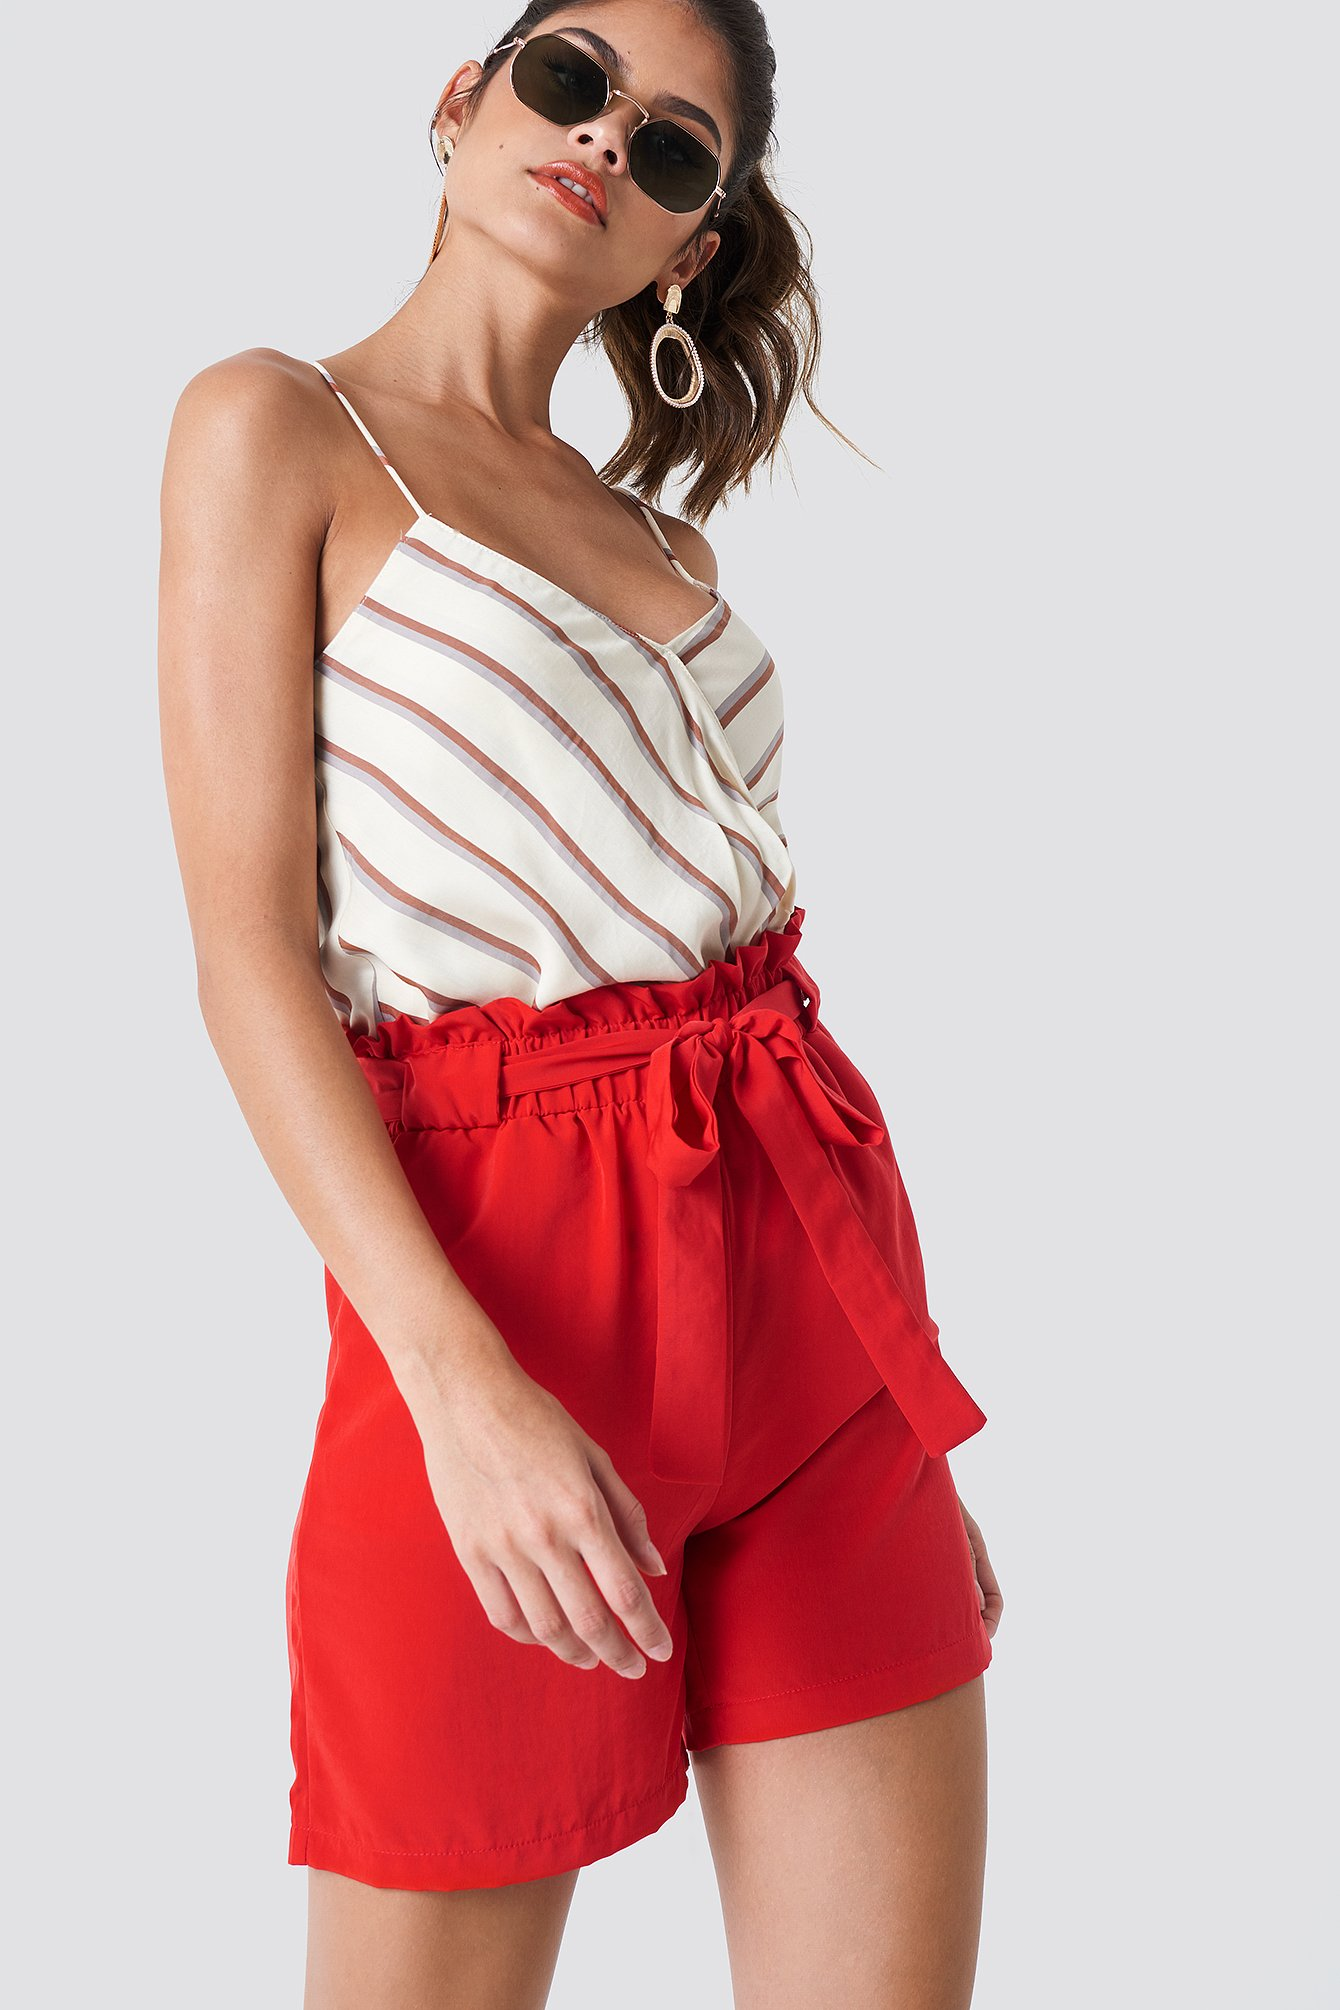 Trendyol High Belted Shorts - Red